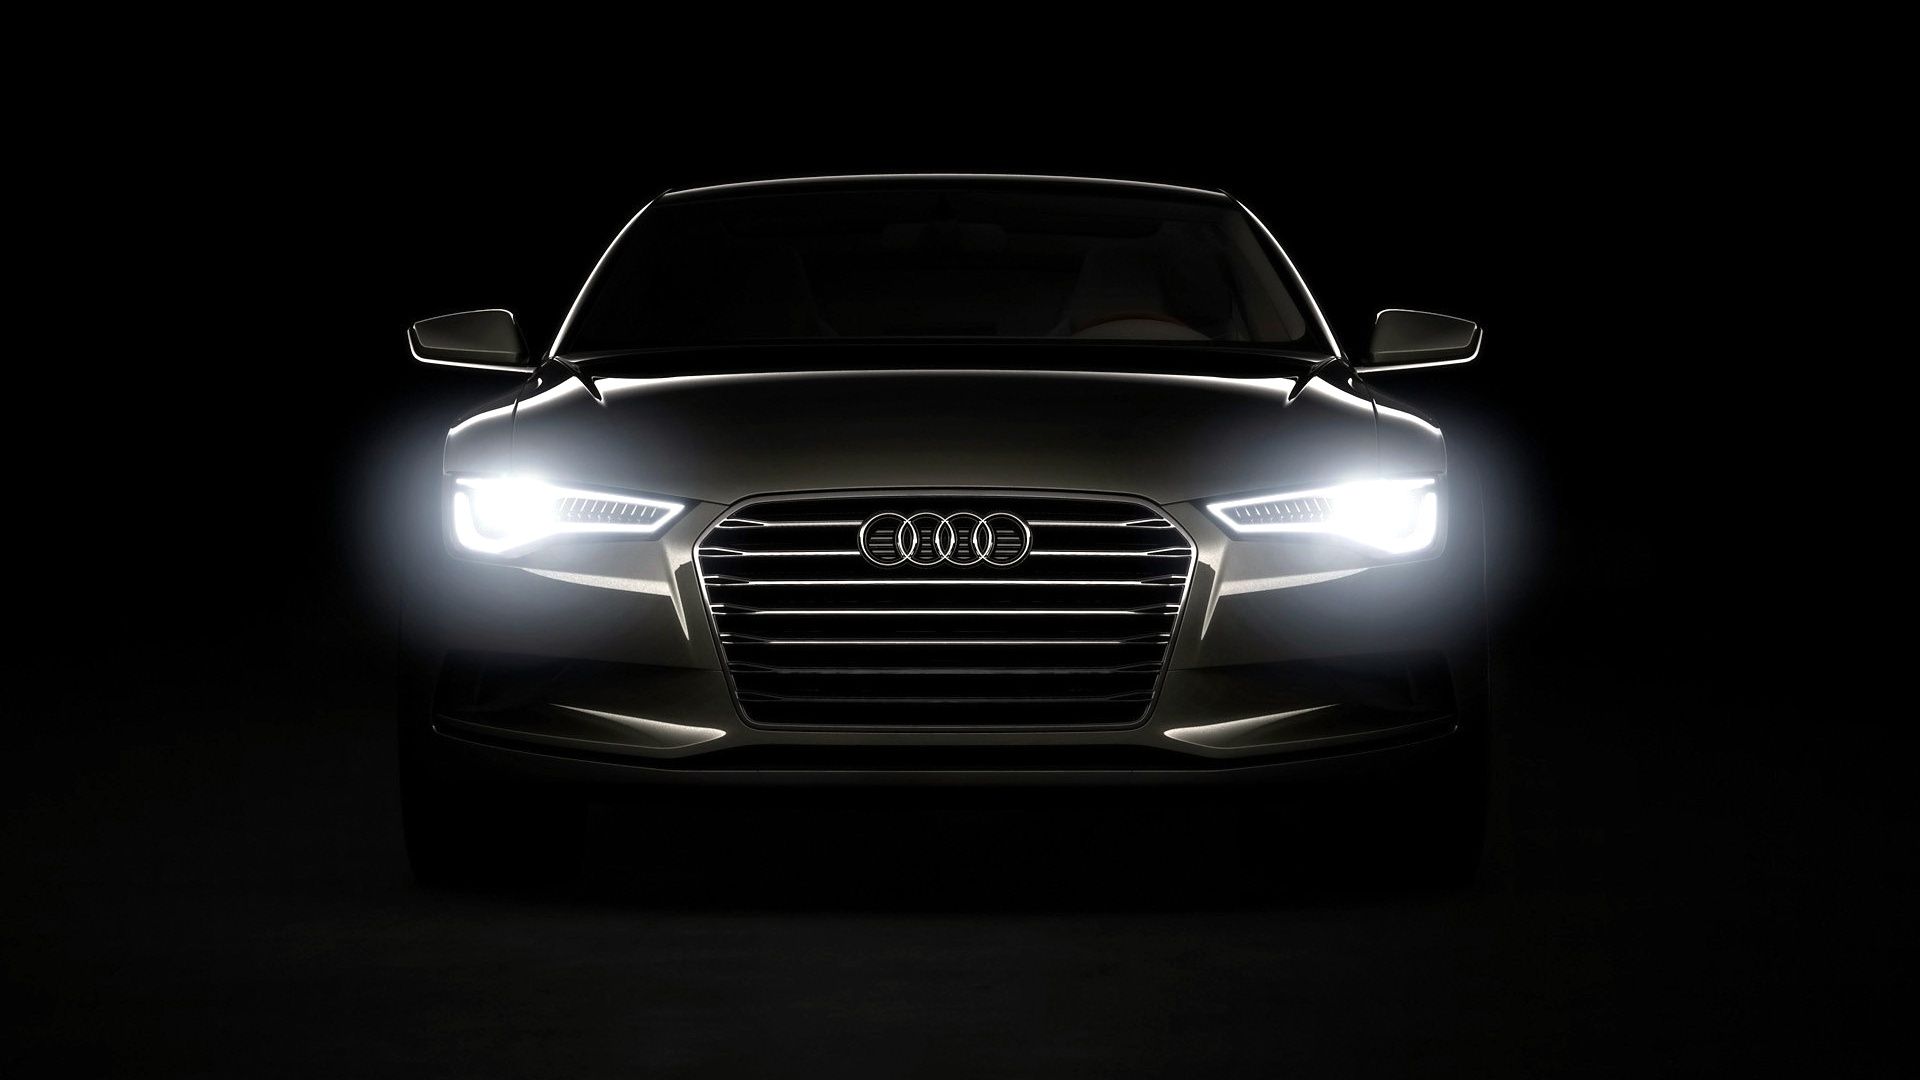 backgrounds your desktop Audi cars wallpapers are download in hd 1920x1080